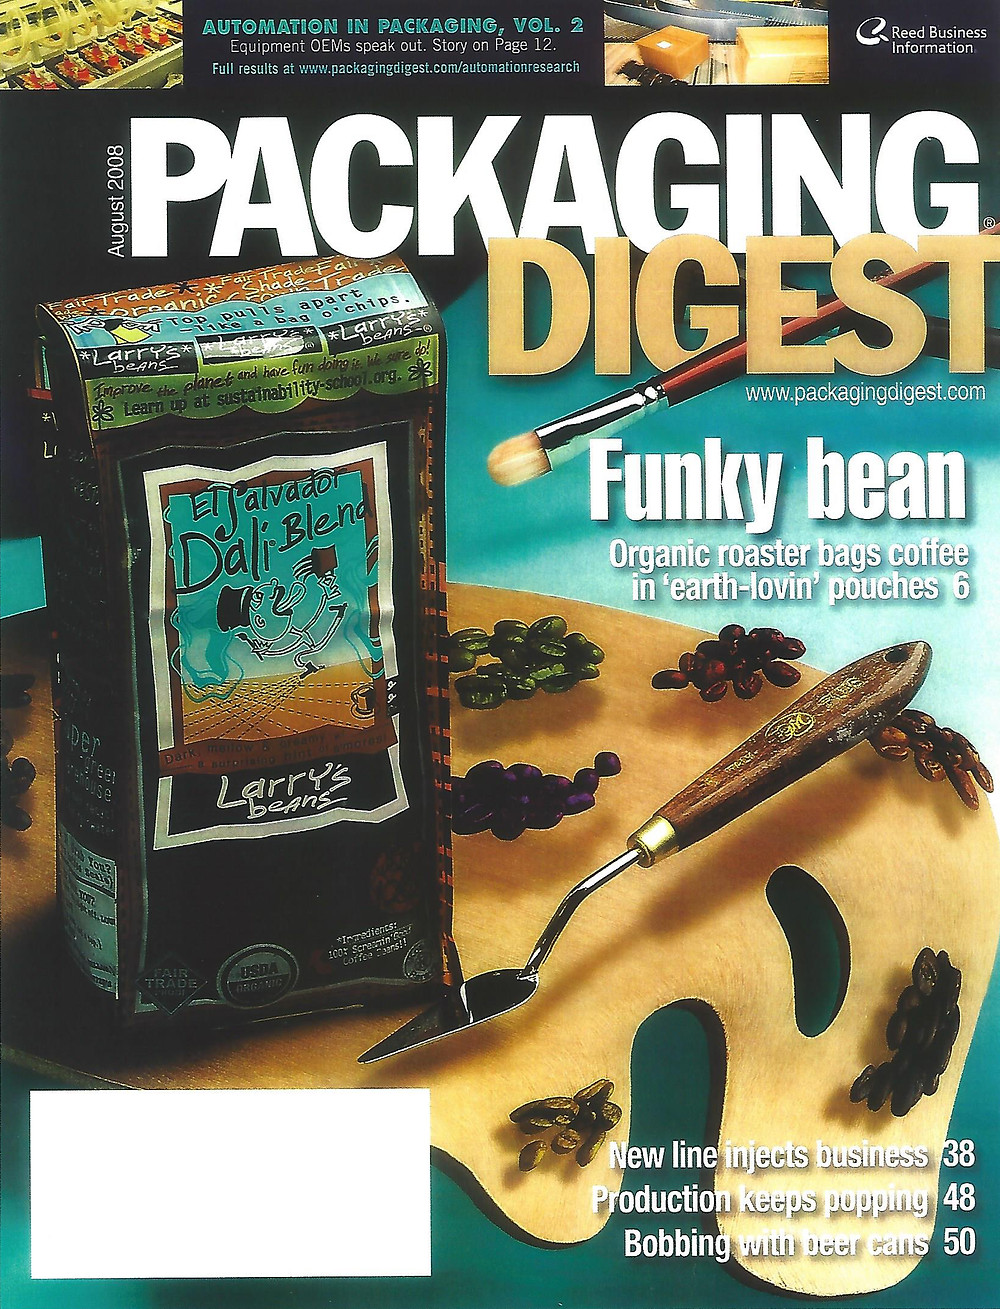 Packaging Digest - Biodegradable Coffee Pouches Article